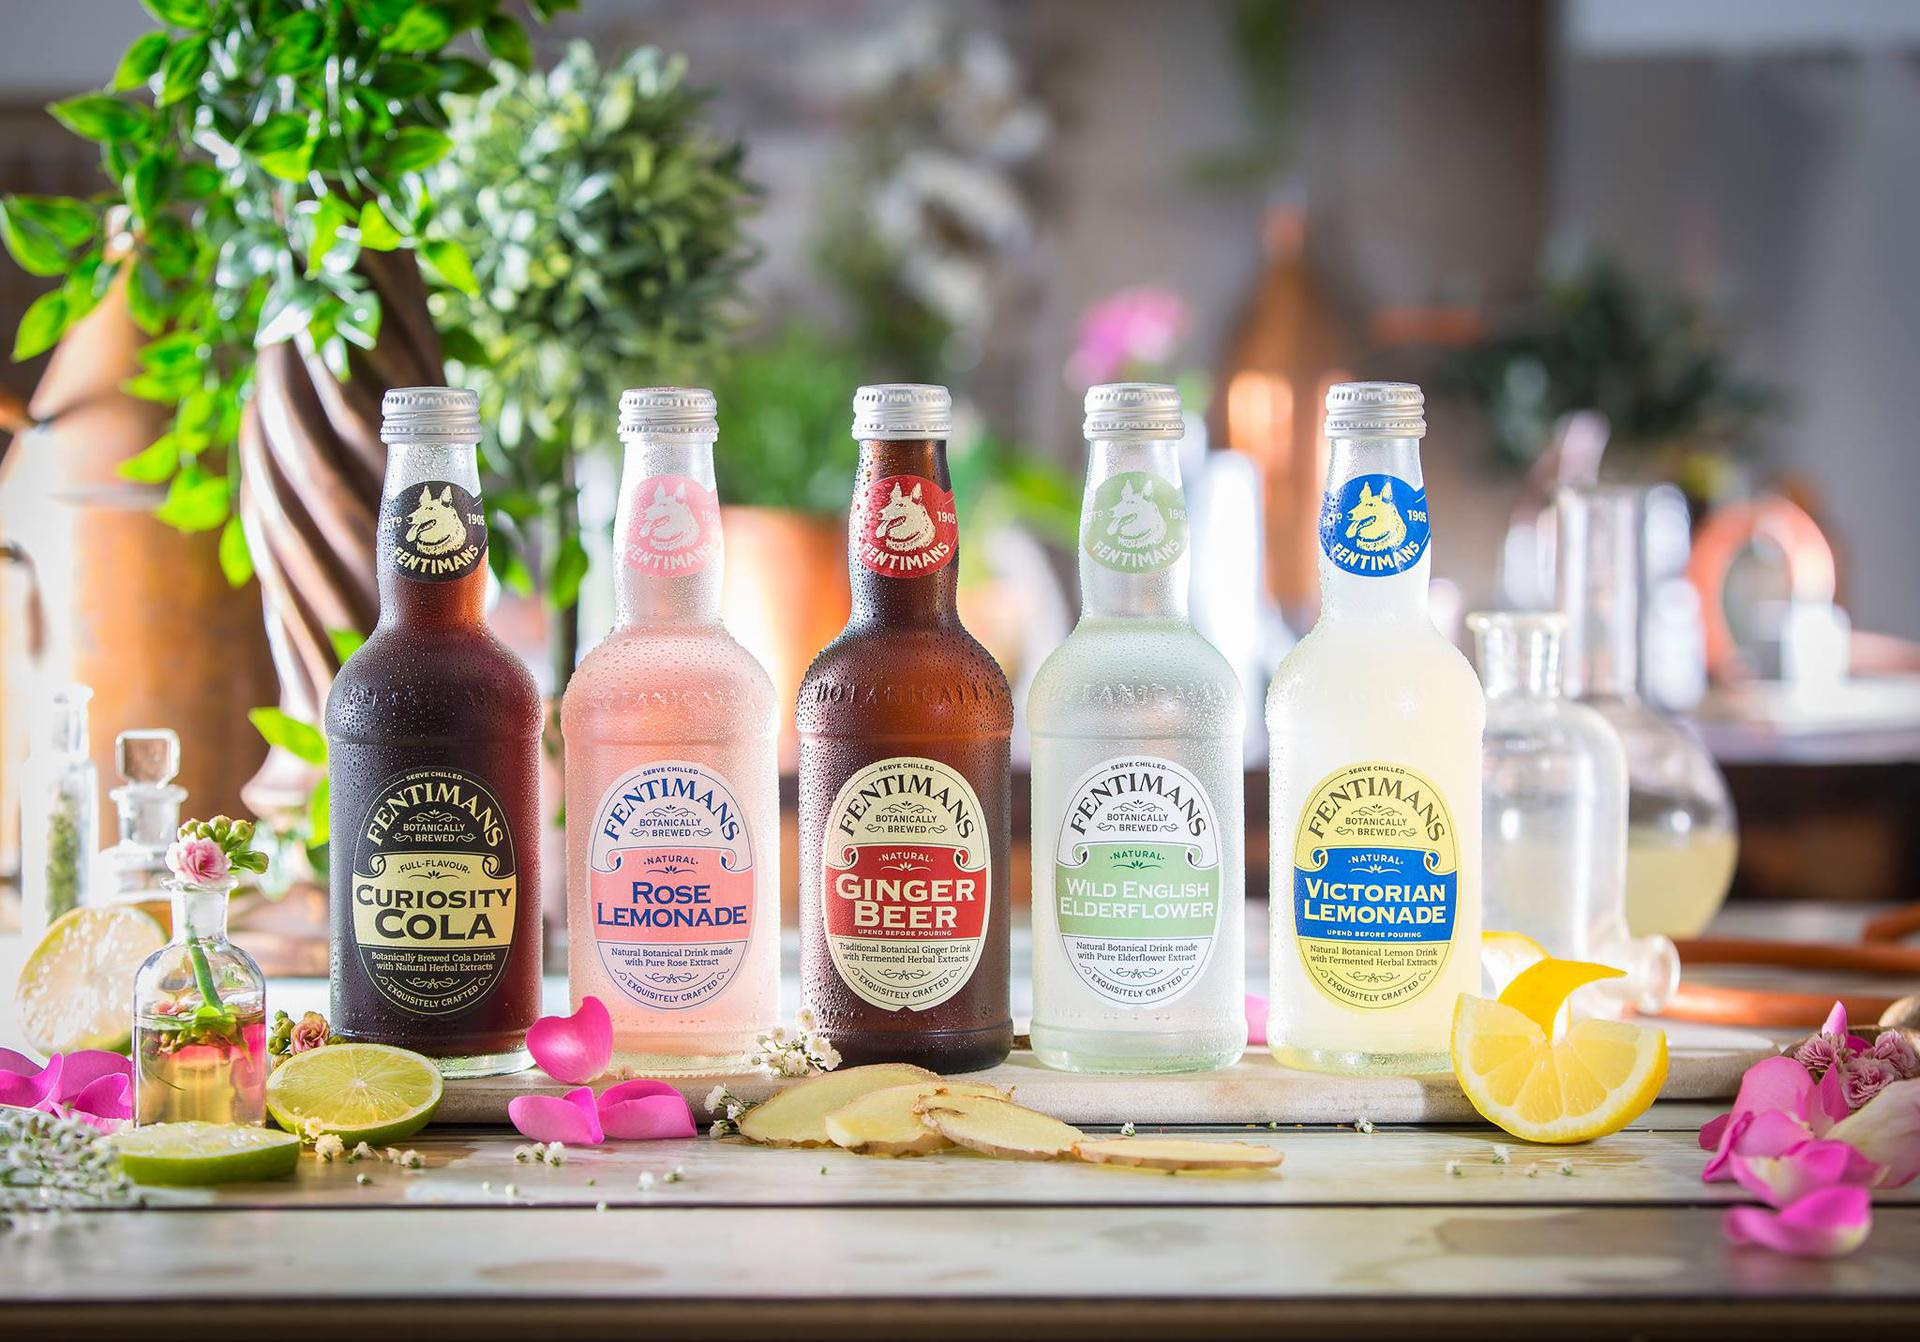 Artisanal Imports Partners With Fentimans Botanically Brewed Drinks photo